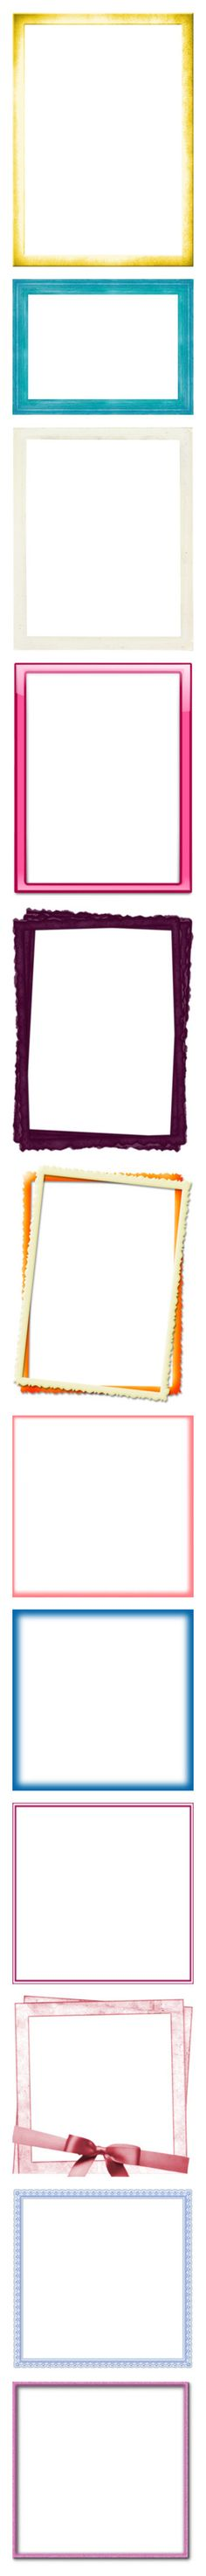 """""""Frames 2"""" by jennie-bo-bennie ❤ liked on Polyvore featuring frames, backgrounds, borders/frames, borders, effect, filler, picture frame, frame, decoration and ramki"""